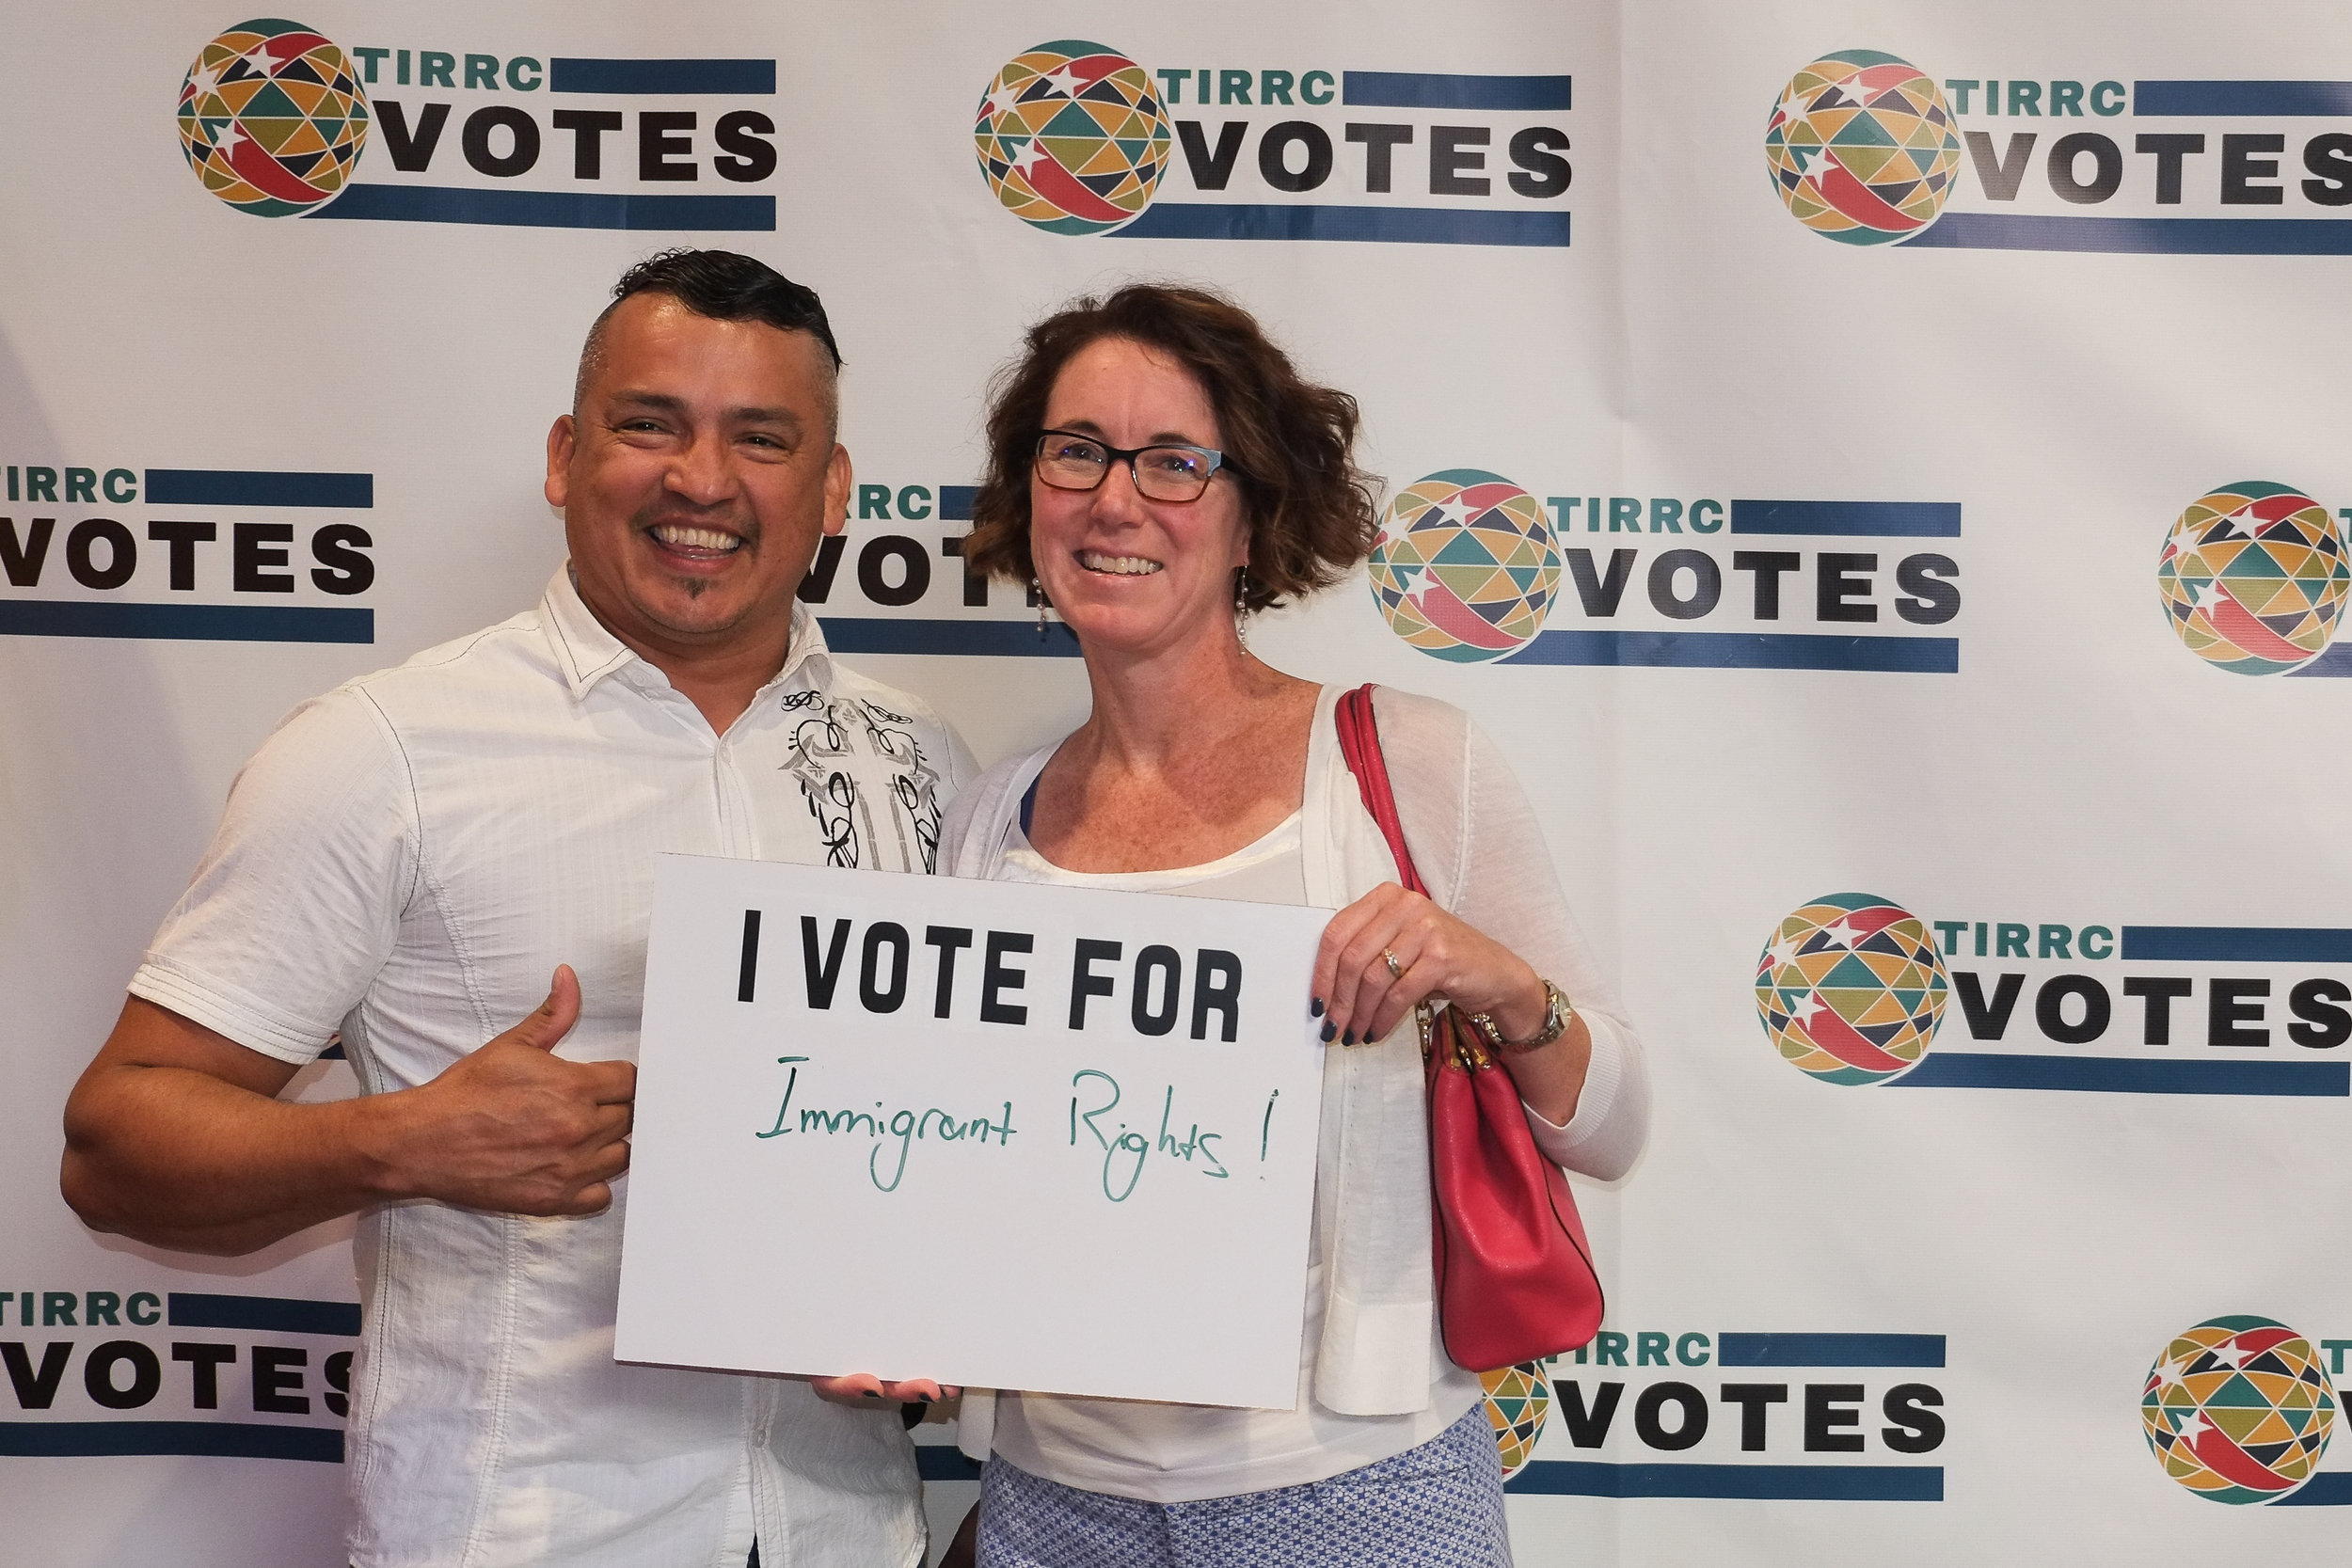 TIRRCVotes-PhotoBooth-16.jpg